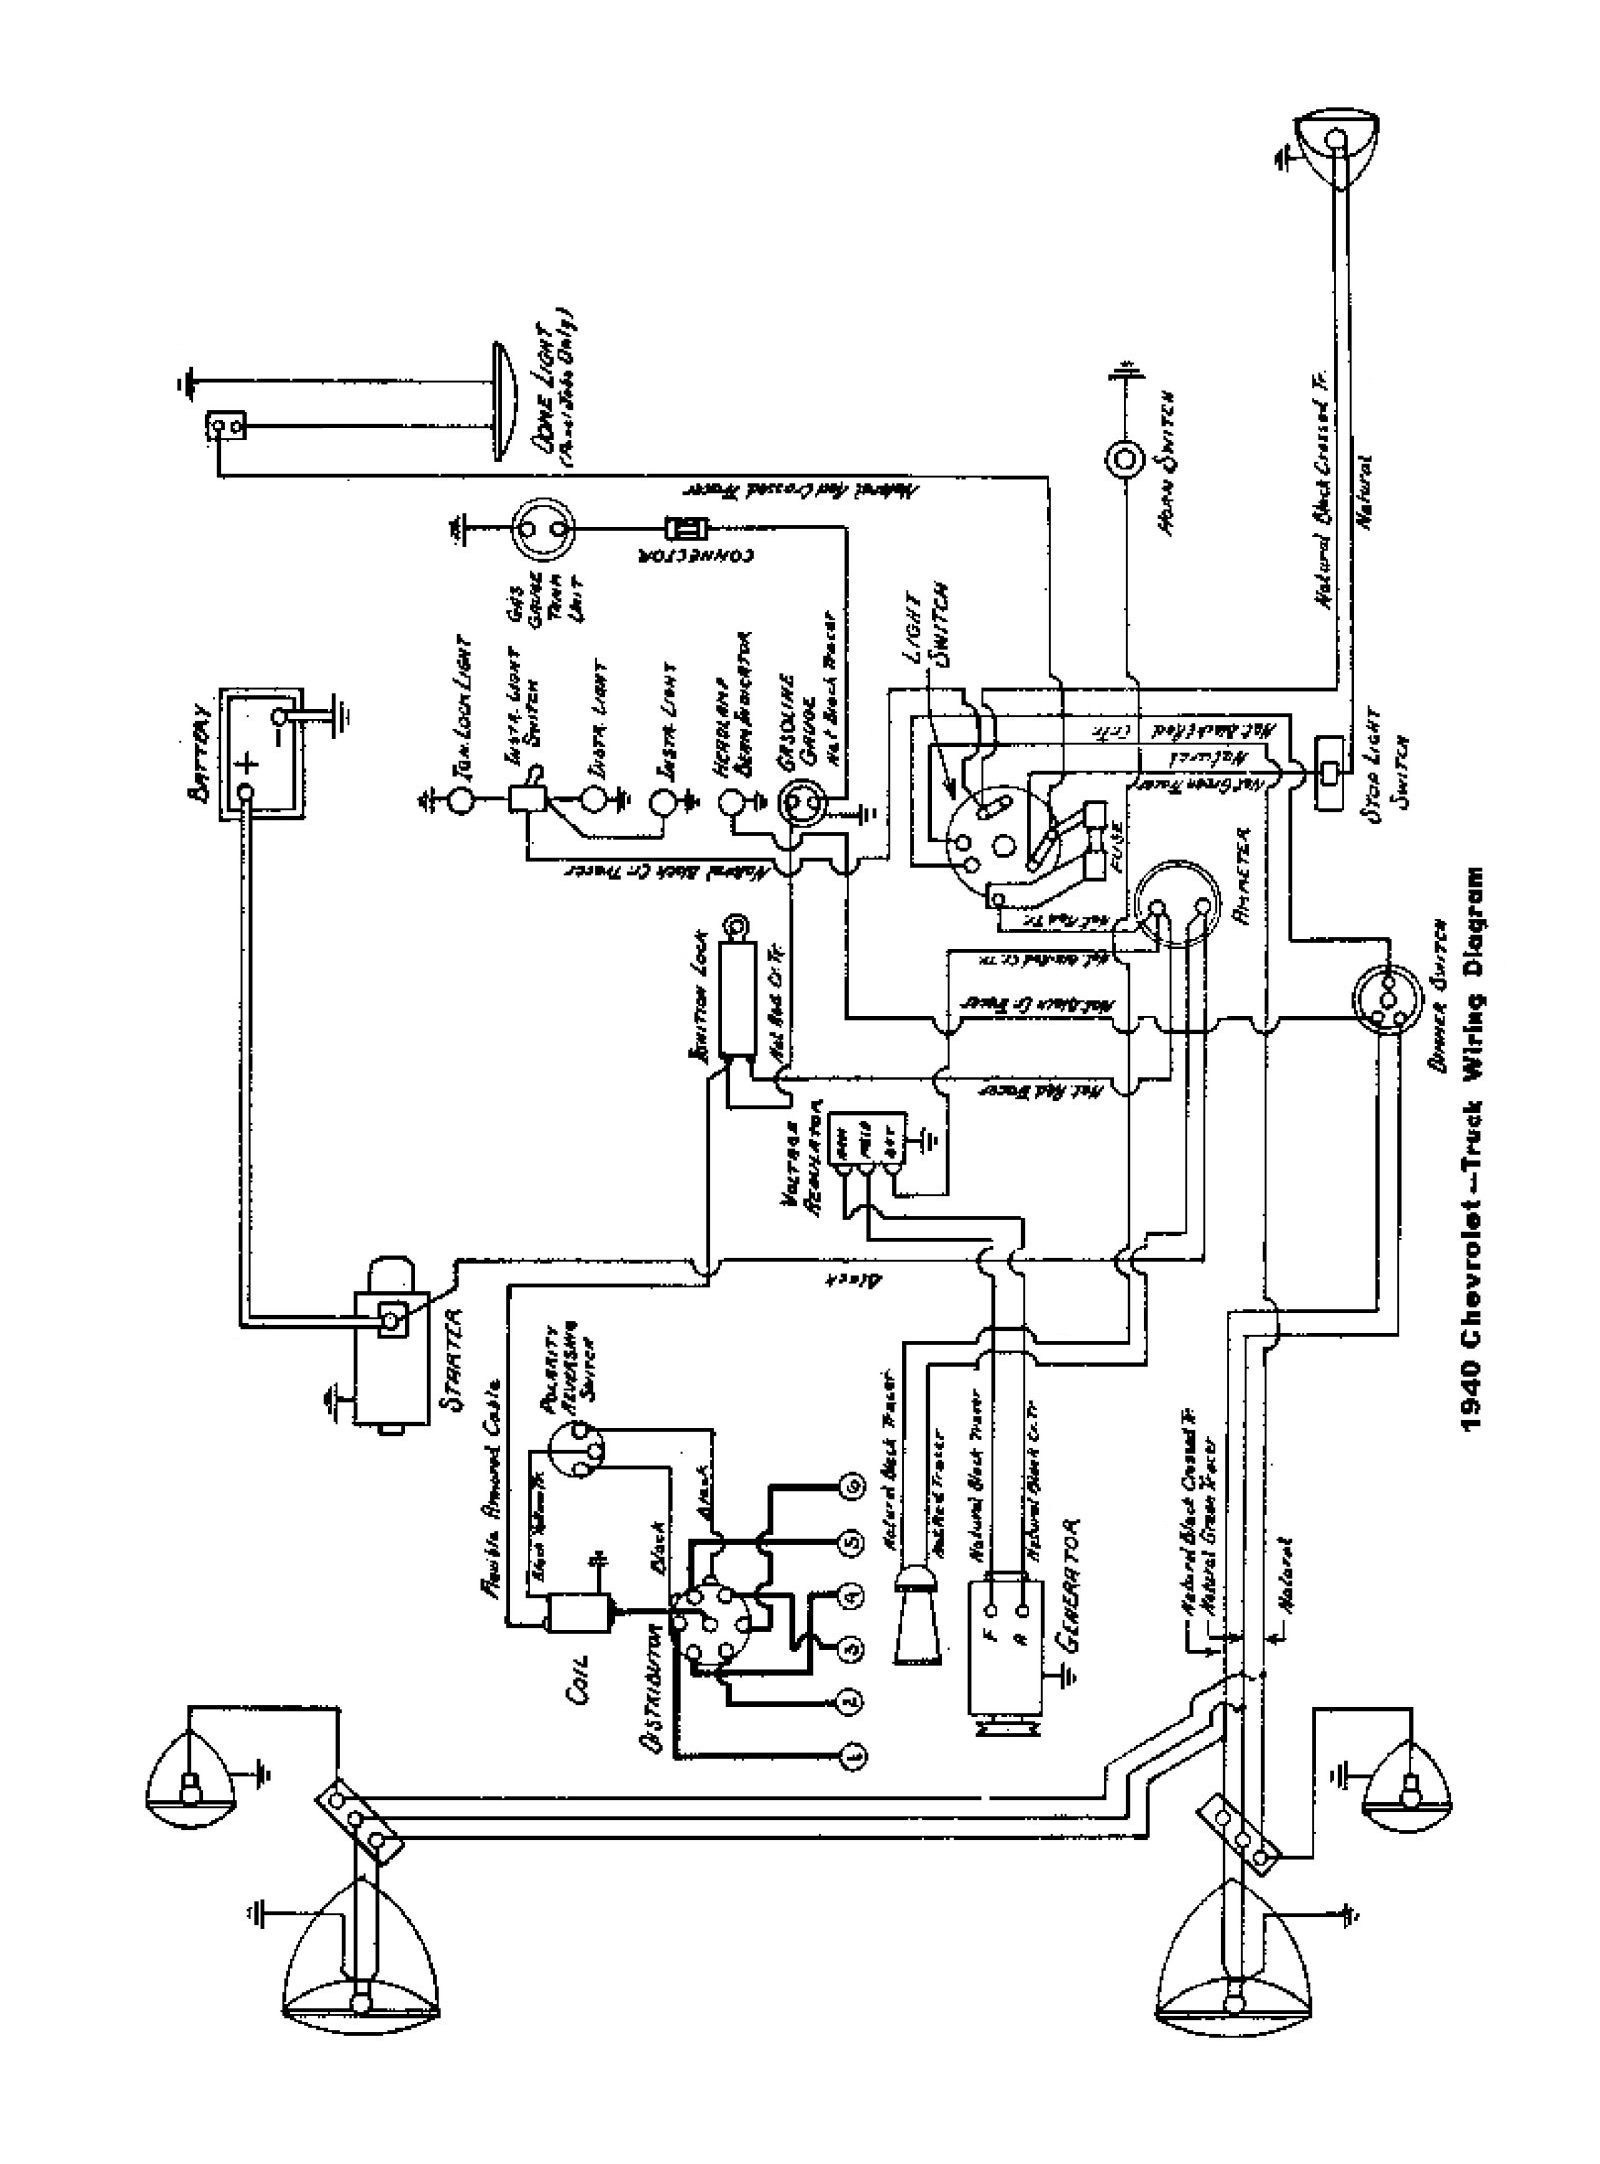 Chevy Truck Wiring Diagrams Free Truck Wiring Schematics Wiring Diagram Paper Of Chevy Truck Wiring Diagrams Free